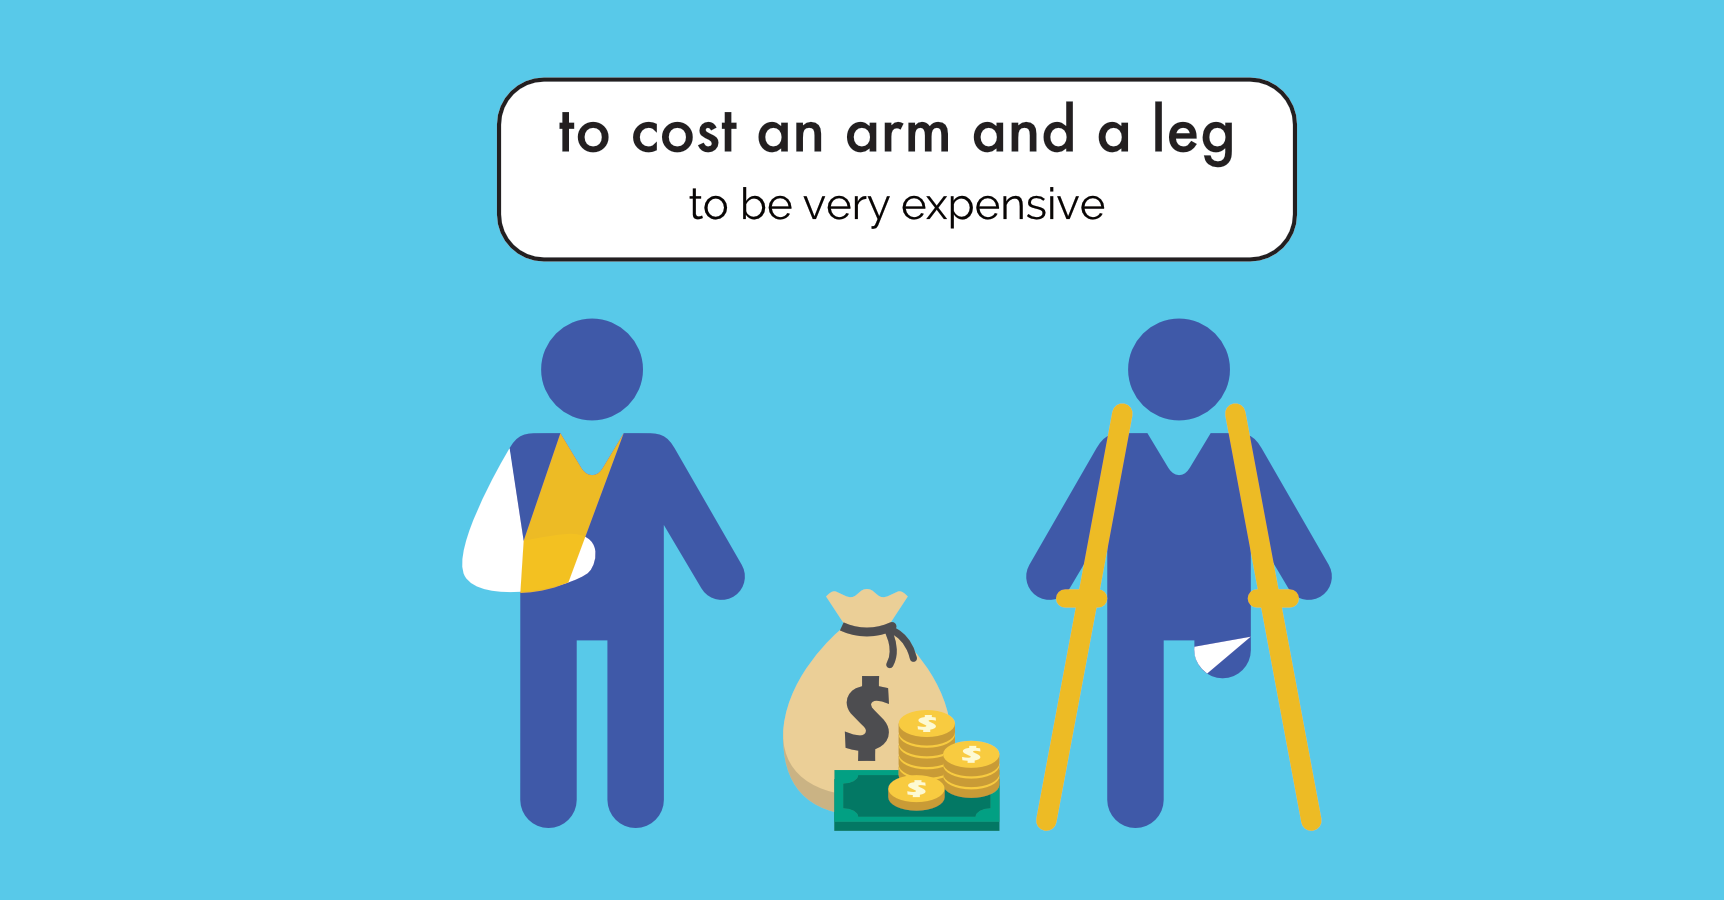 cost an arm and a leg: rất đắt